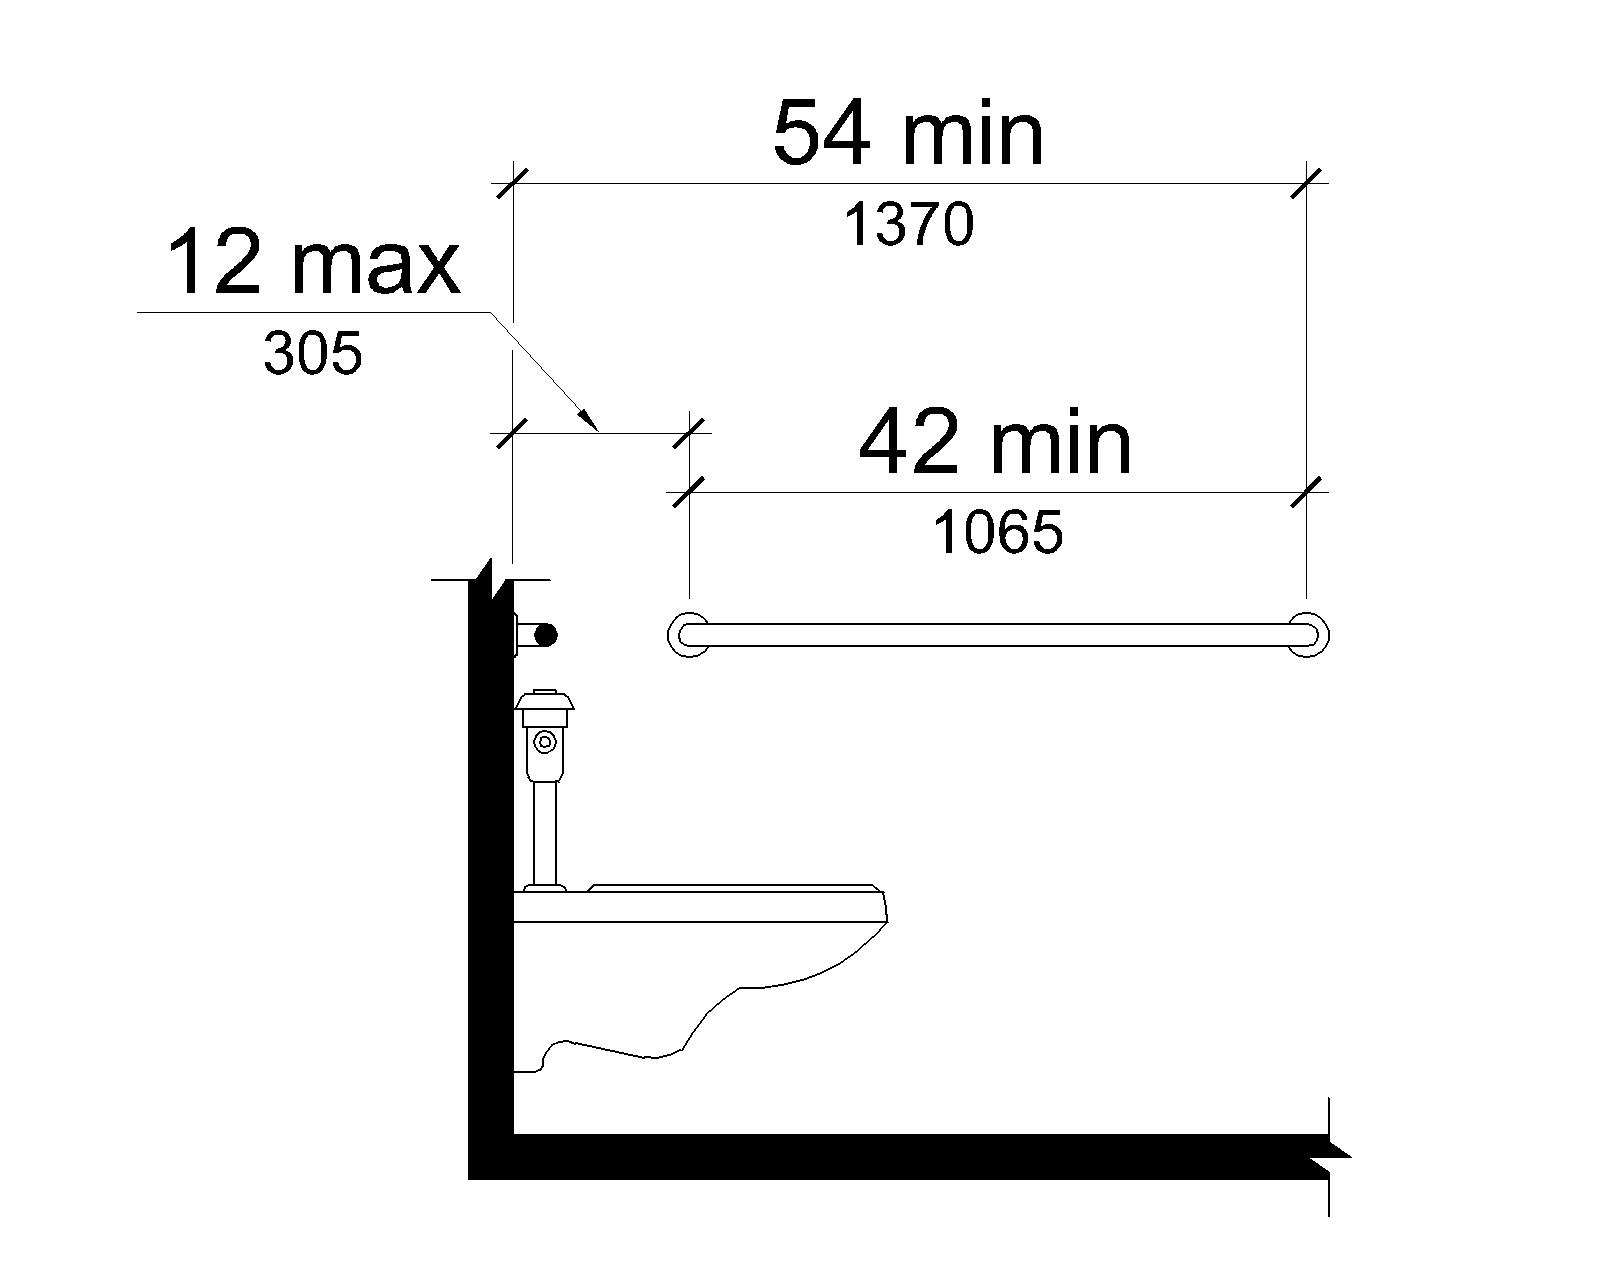 Elevation drawing shows the side wall grab bar to be 42 inches (1065) long minimum, located 12 inches (305 mm) maximum from the rear wall and extending 54 inches (1370 mm) minimum from the rear wall.